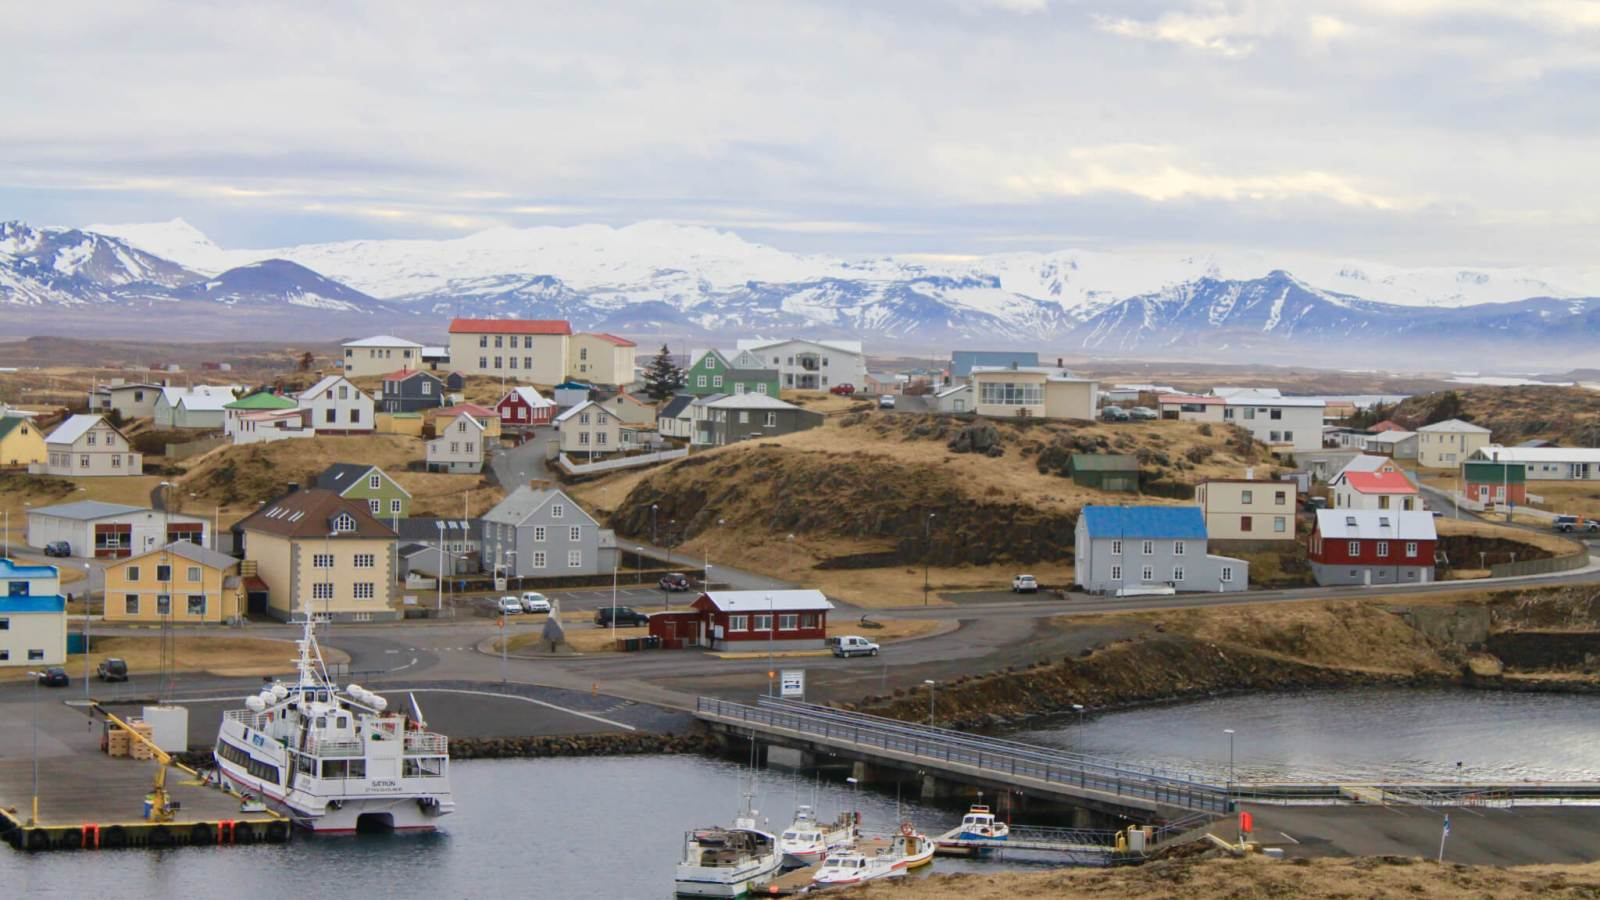 Colorful houses of Stykkishólmur dotting the harbor with mountains beyond